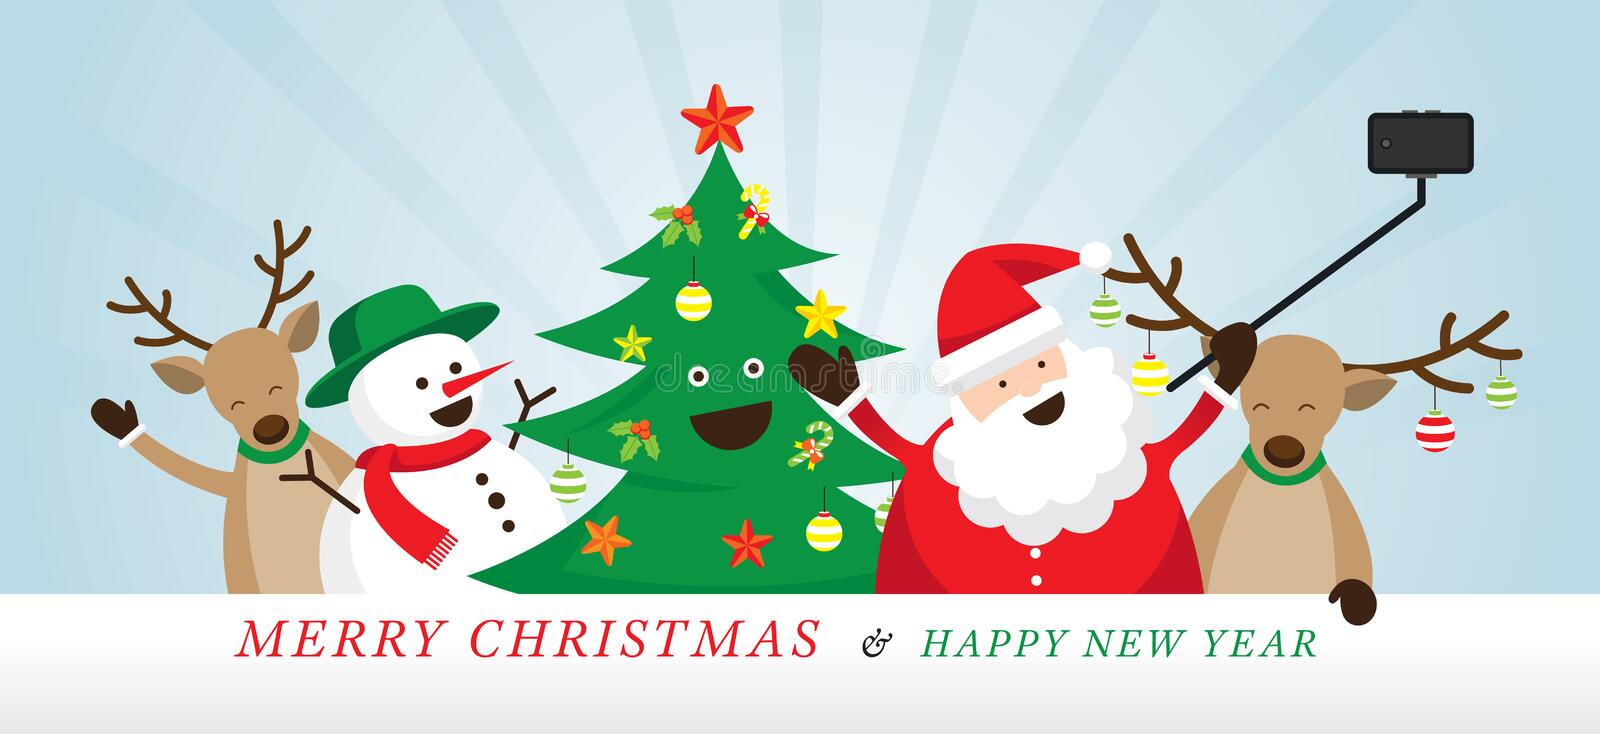 Christmas, Santa Claus and Friends Selfie stock image